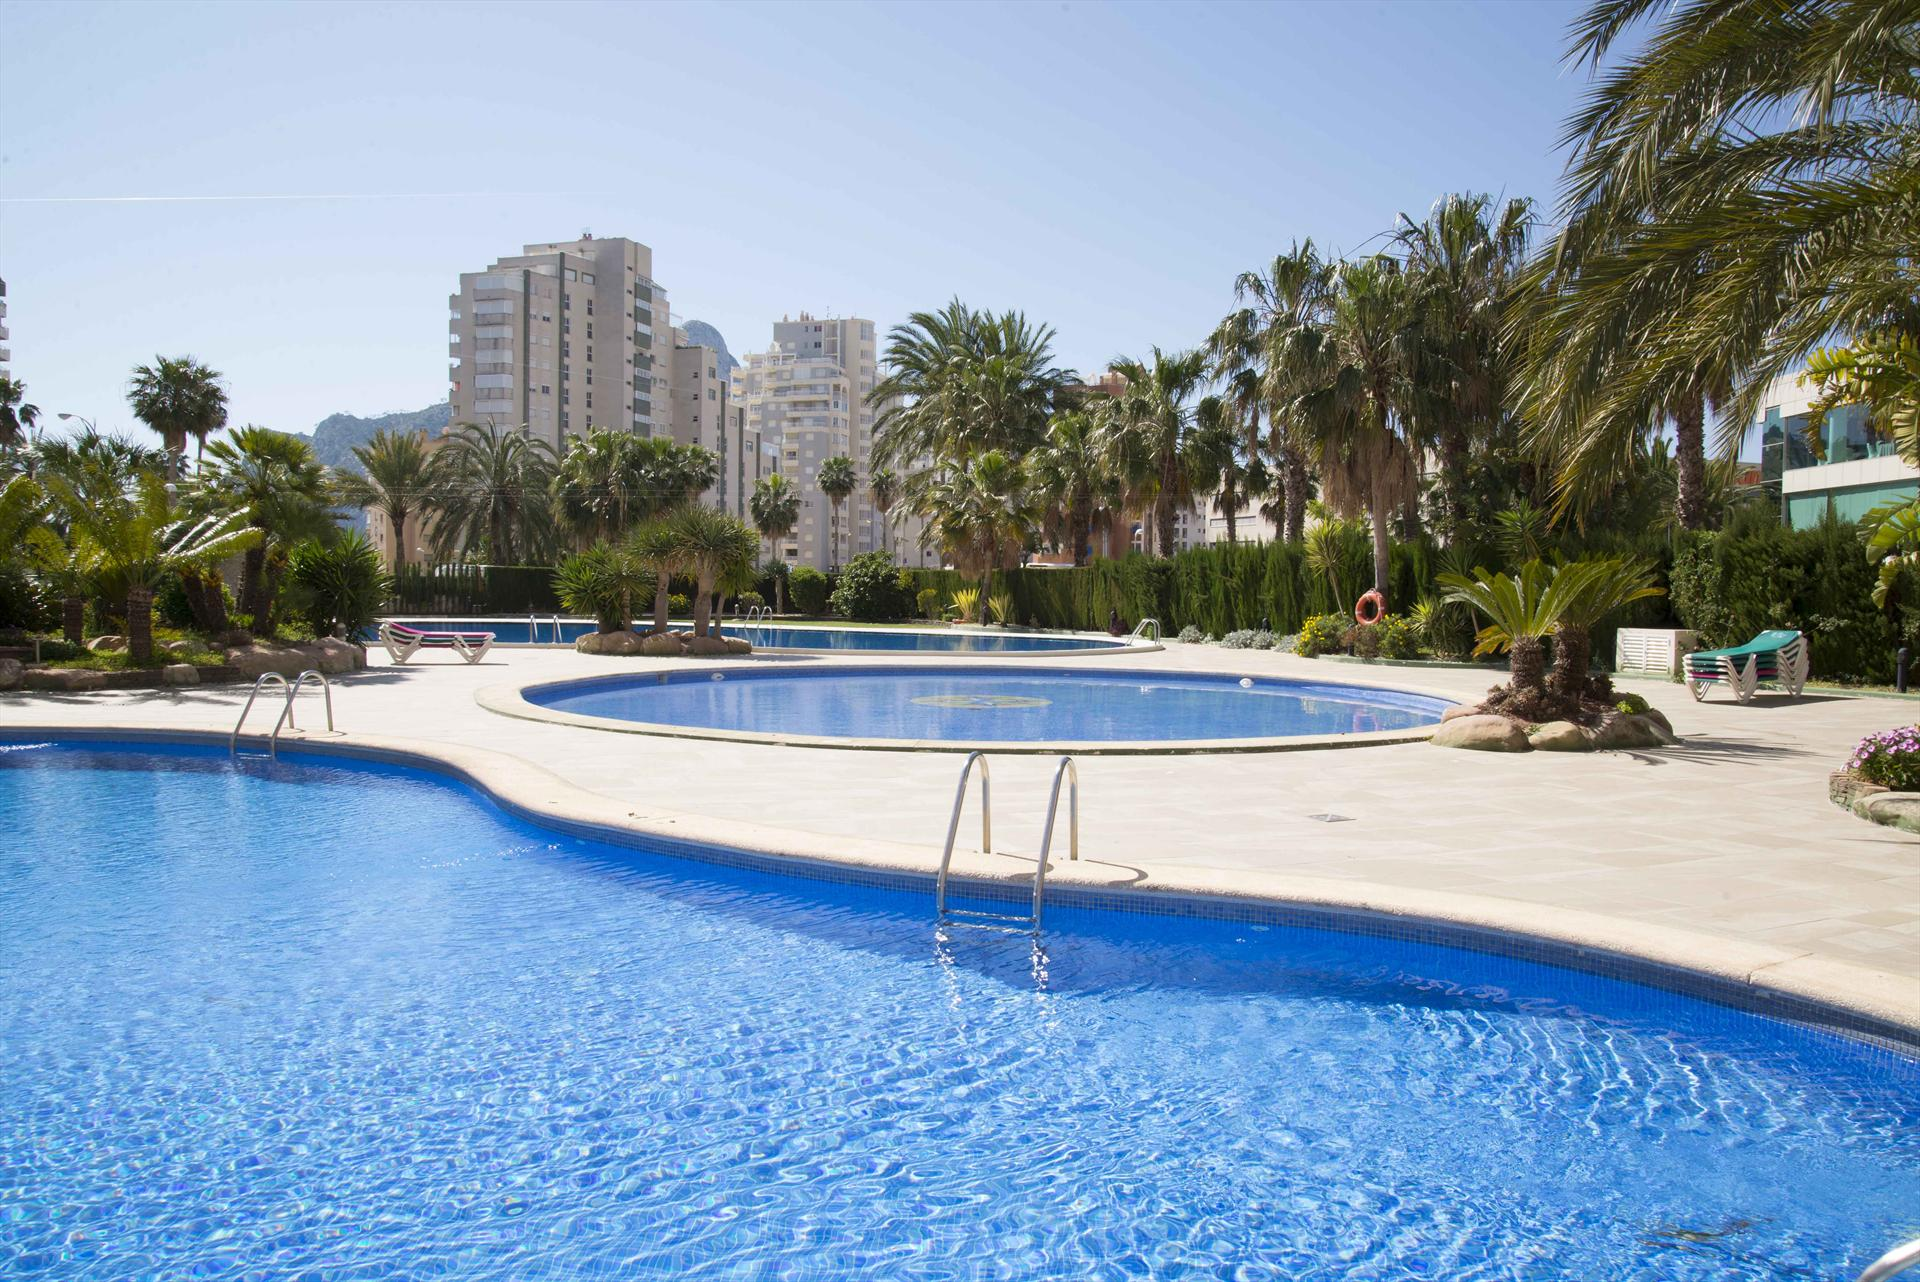 Apartamento Coralbeach 28A, Apartment  with communal pool in Calpe, on the Costa Blanca, Spain for 6 persons.....